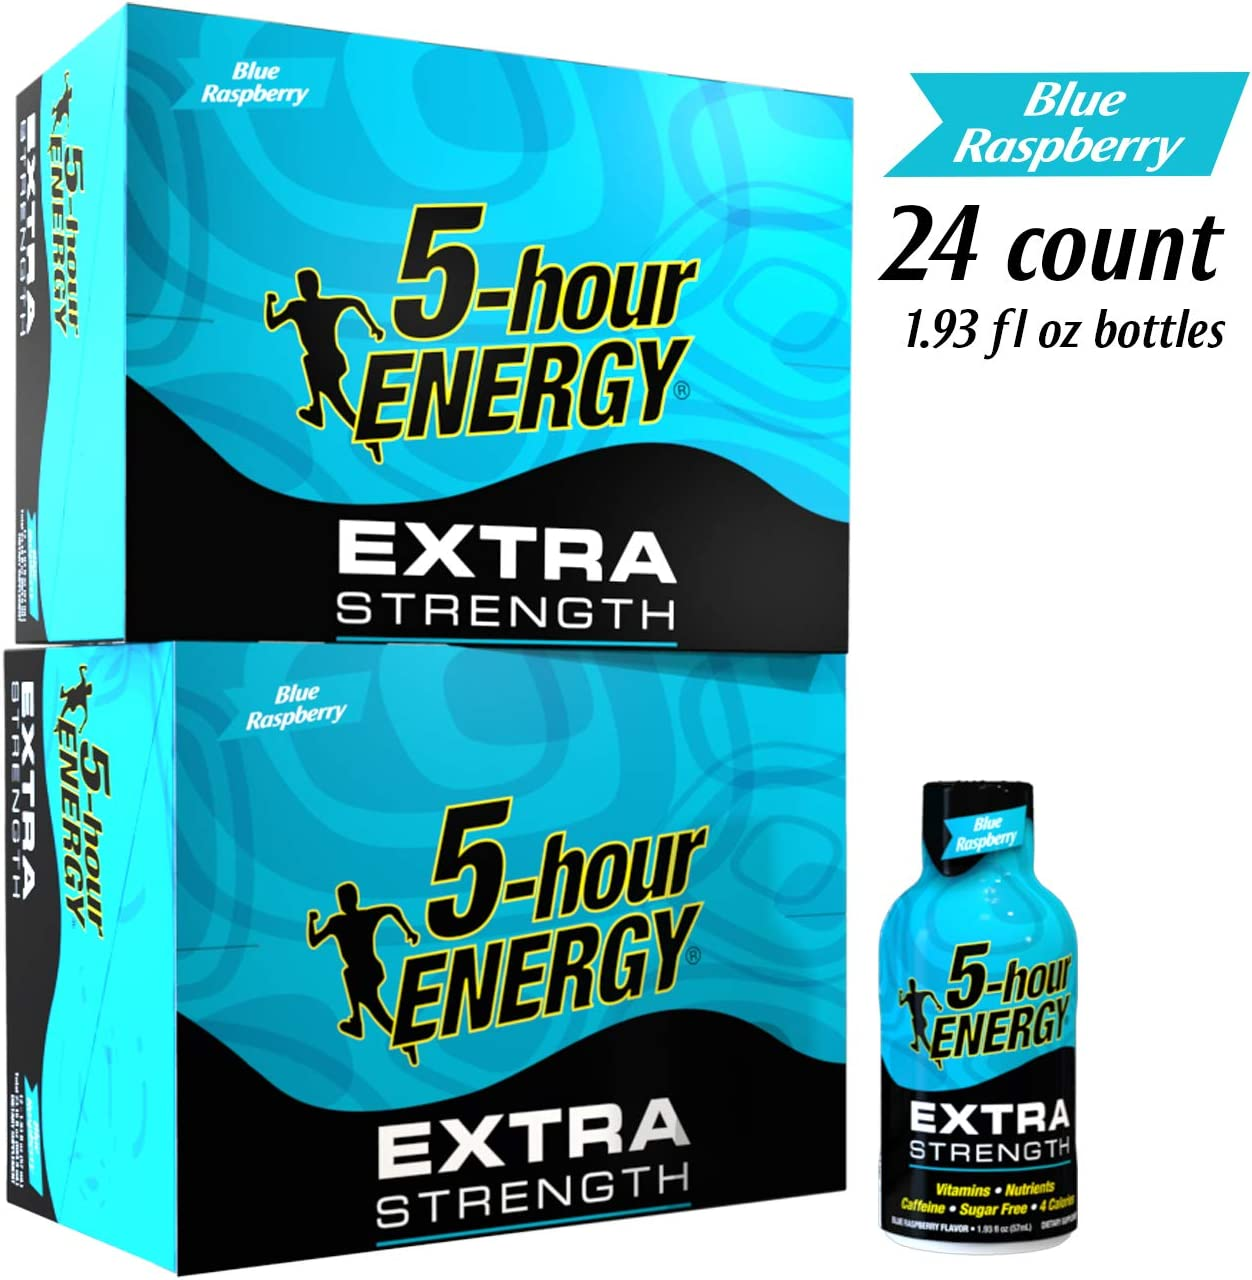 5-hour ENERGY Shot, Extra Strength Blue Raspberry, 1.93 Ounce, 24 count